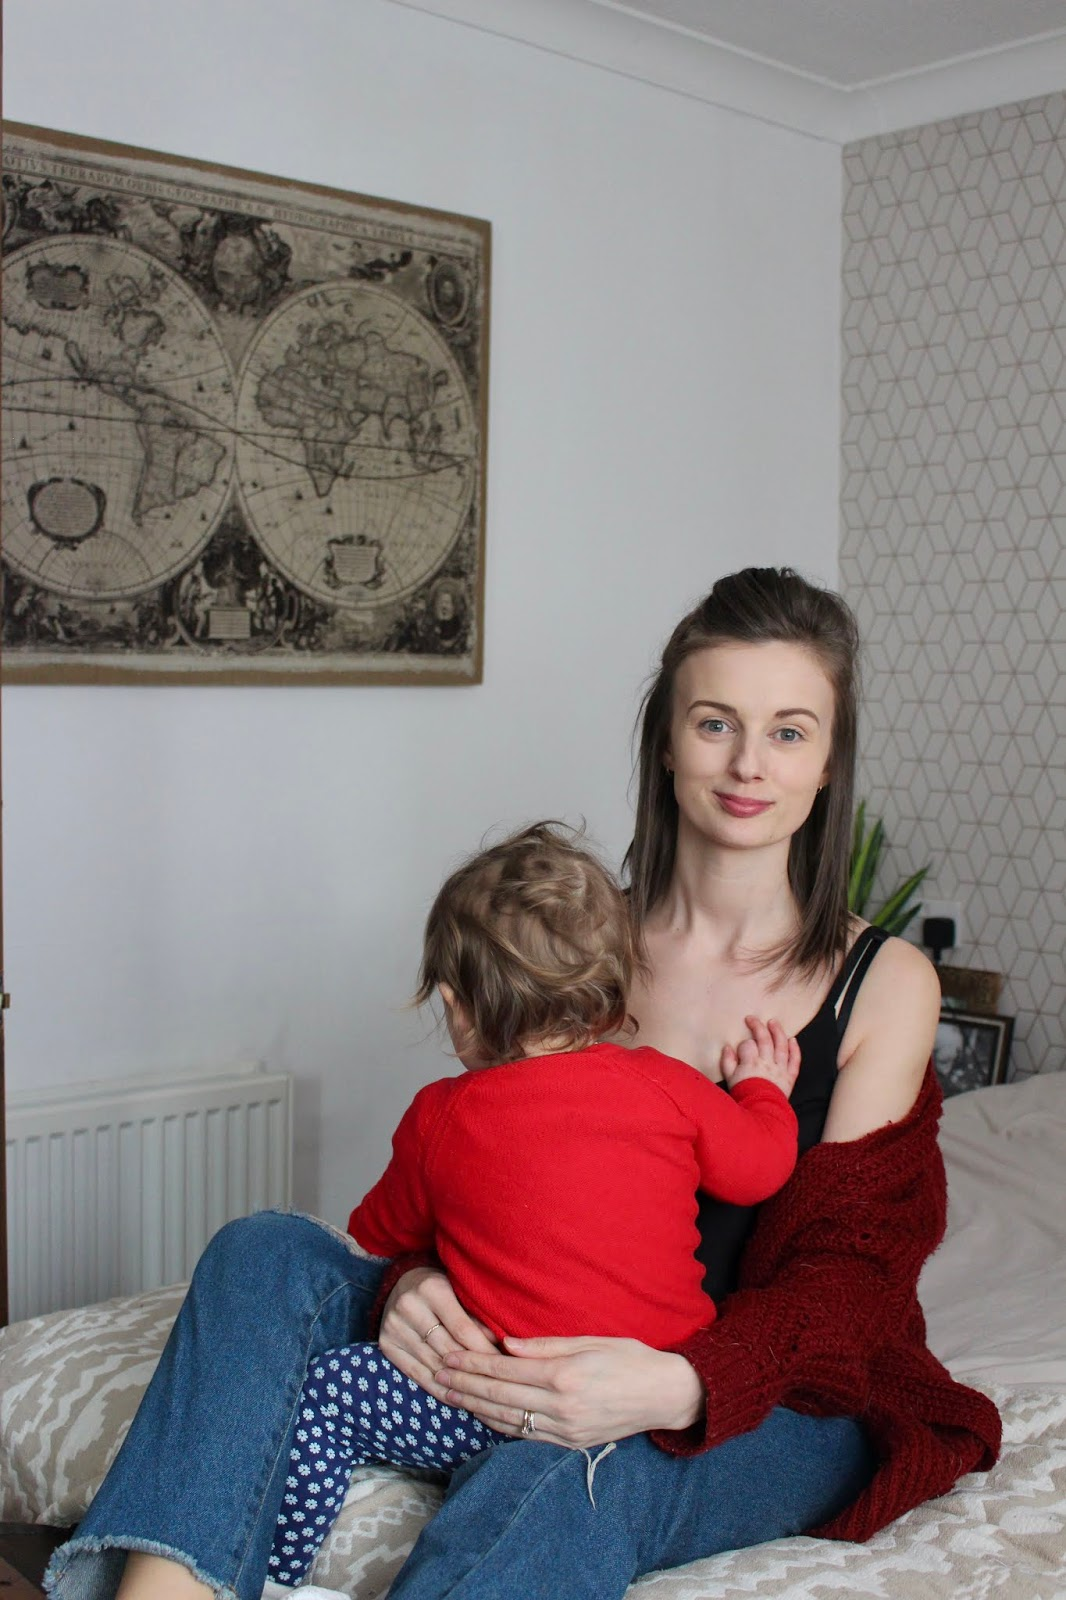 Lifestyle image of mother and baby sat on bed.